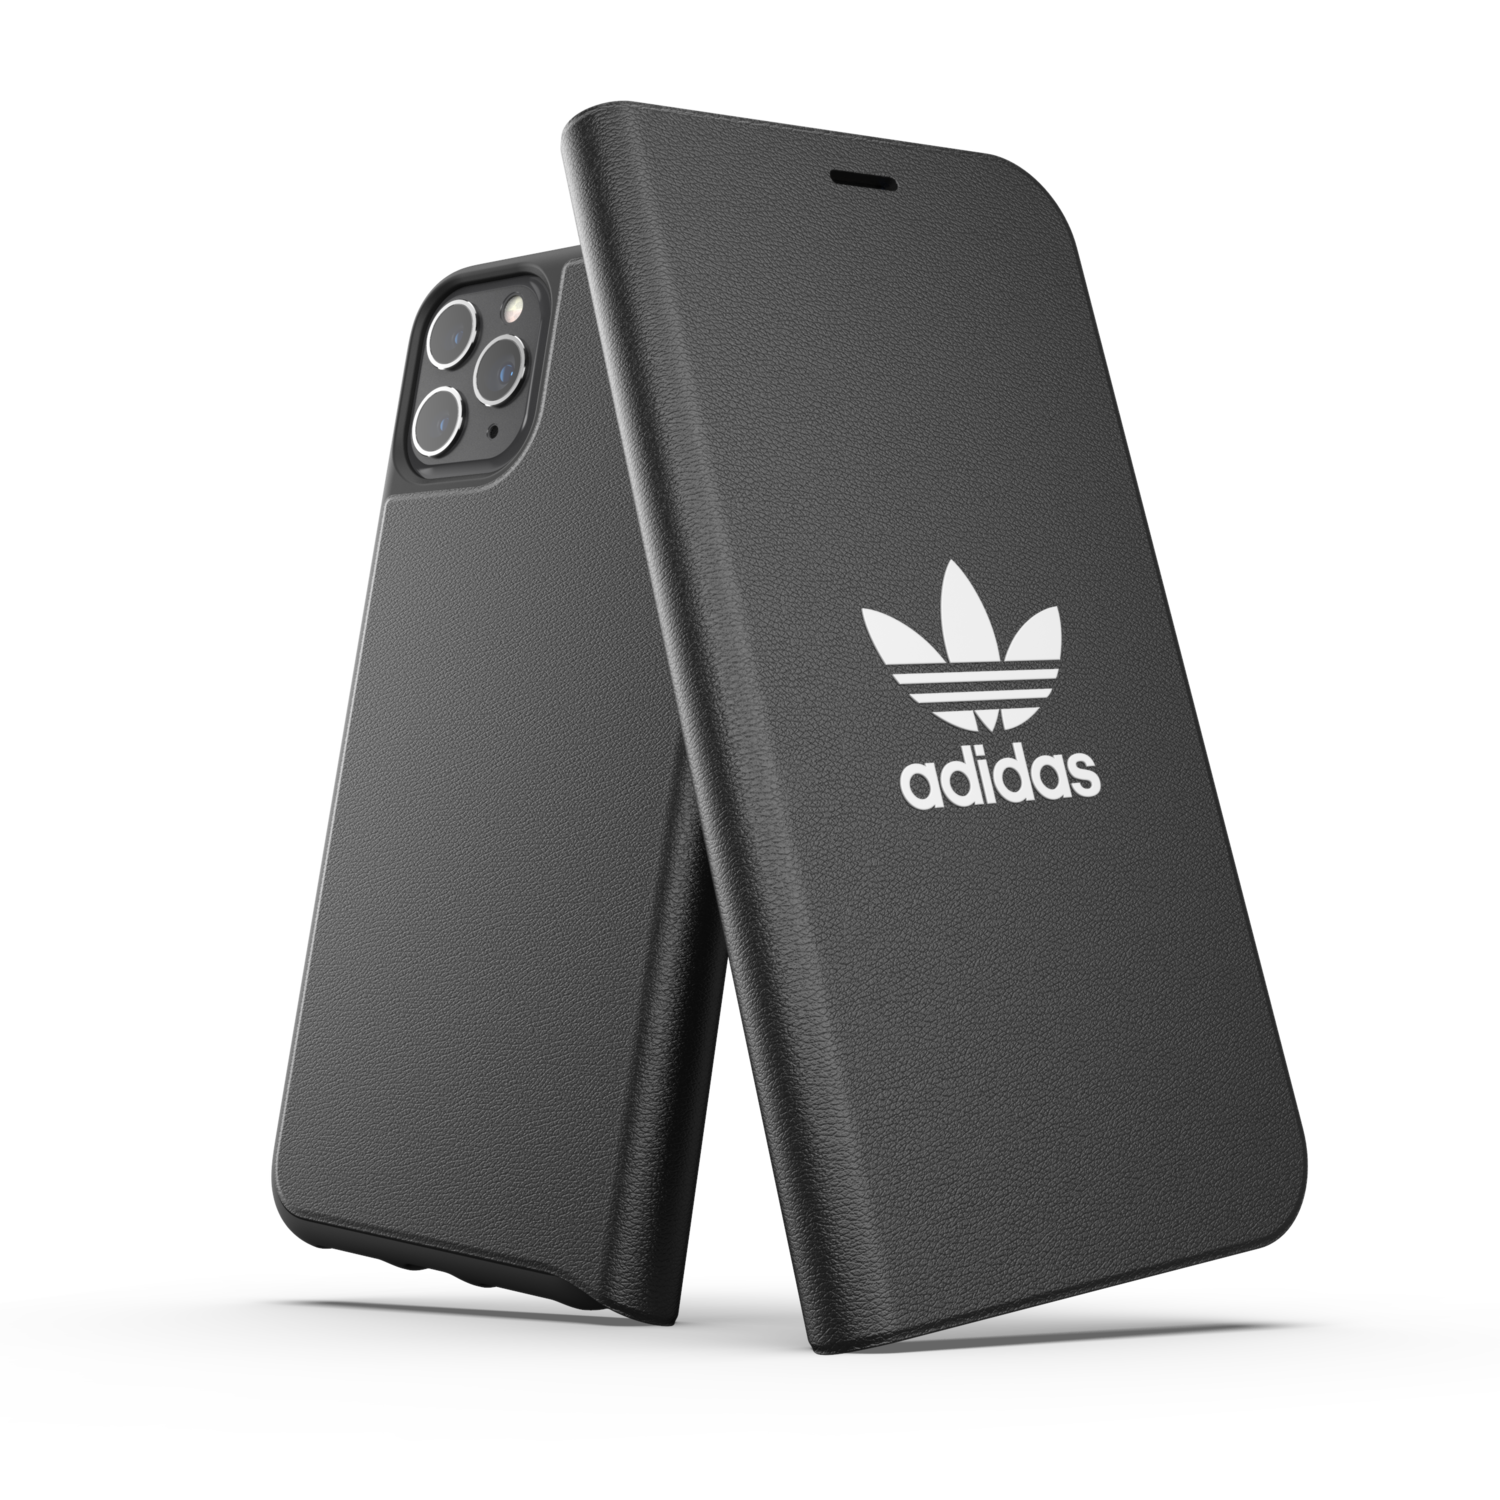 adidas OR Booklet Case Basic FW19/SS21 for iPhone 11 Pro Max black/white